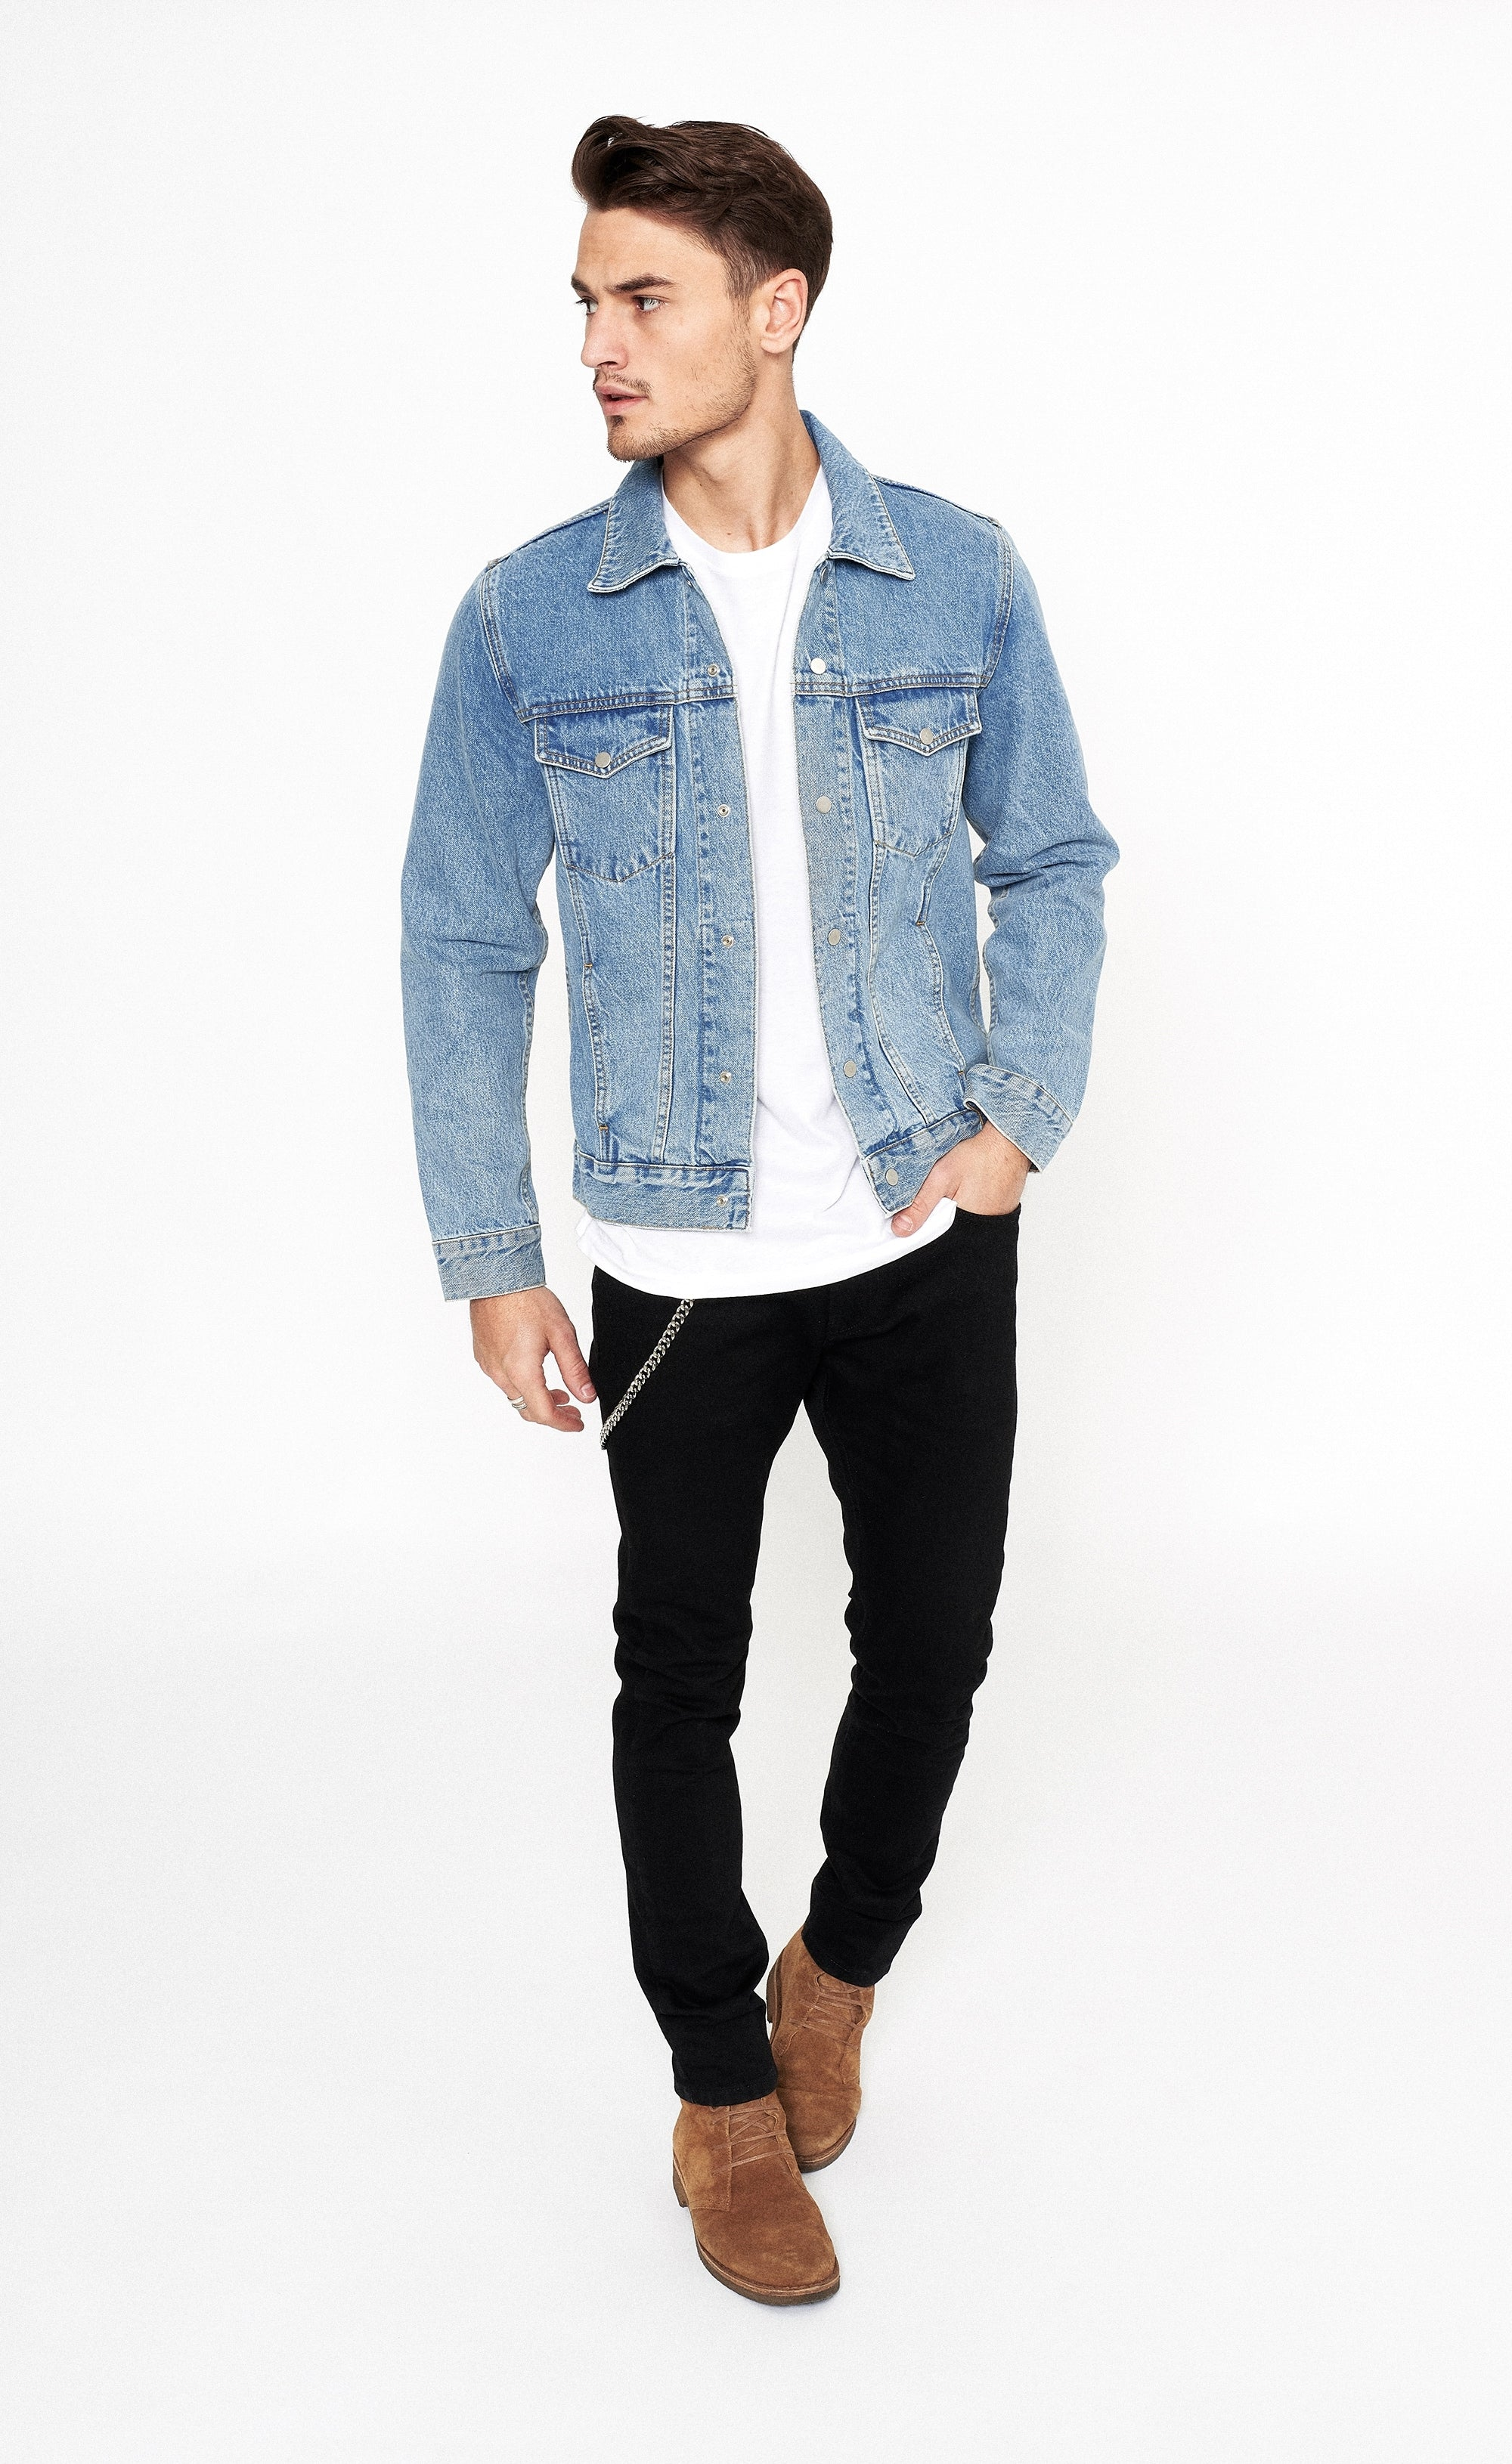 CLASSIC DENIM JACKET - BLUE - Forage-Clothing